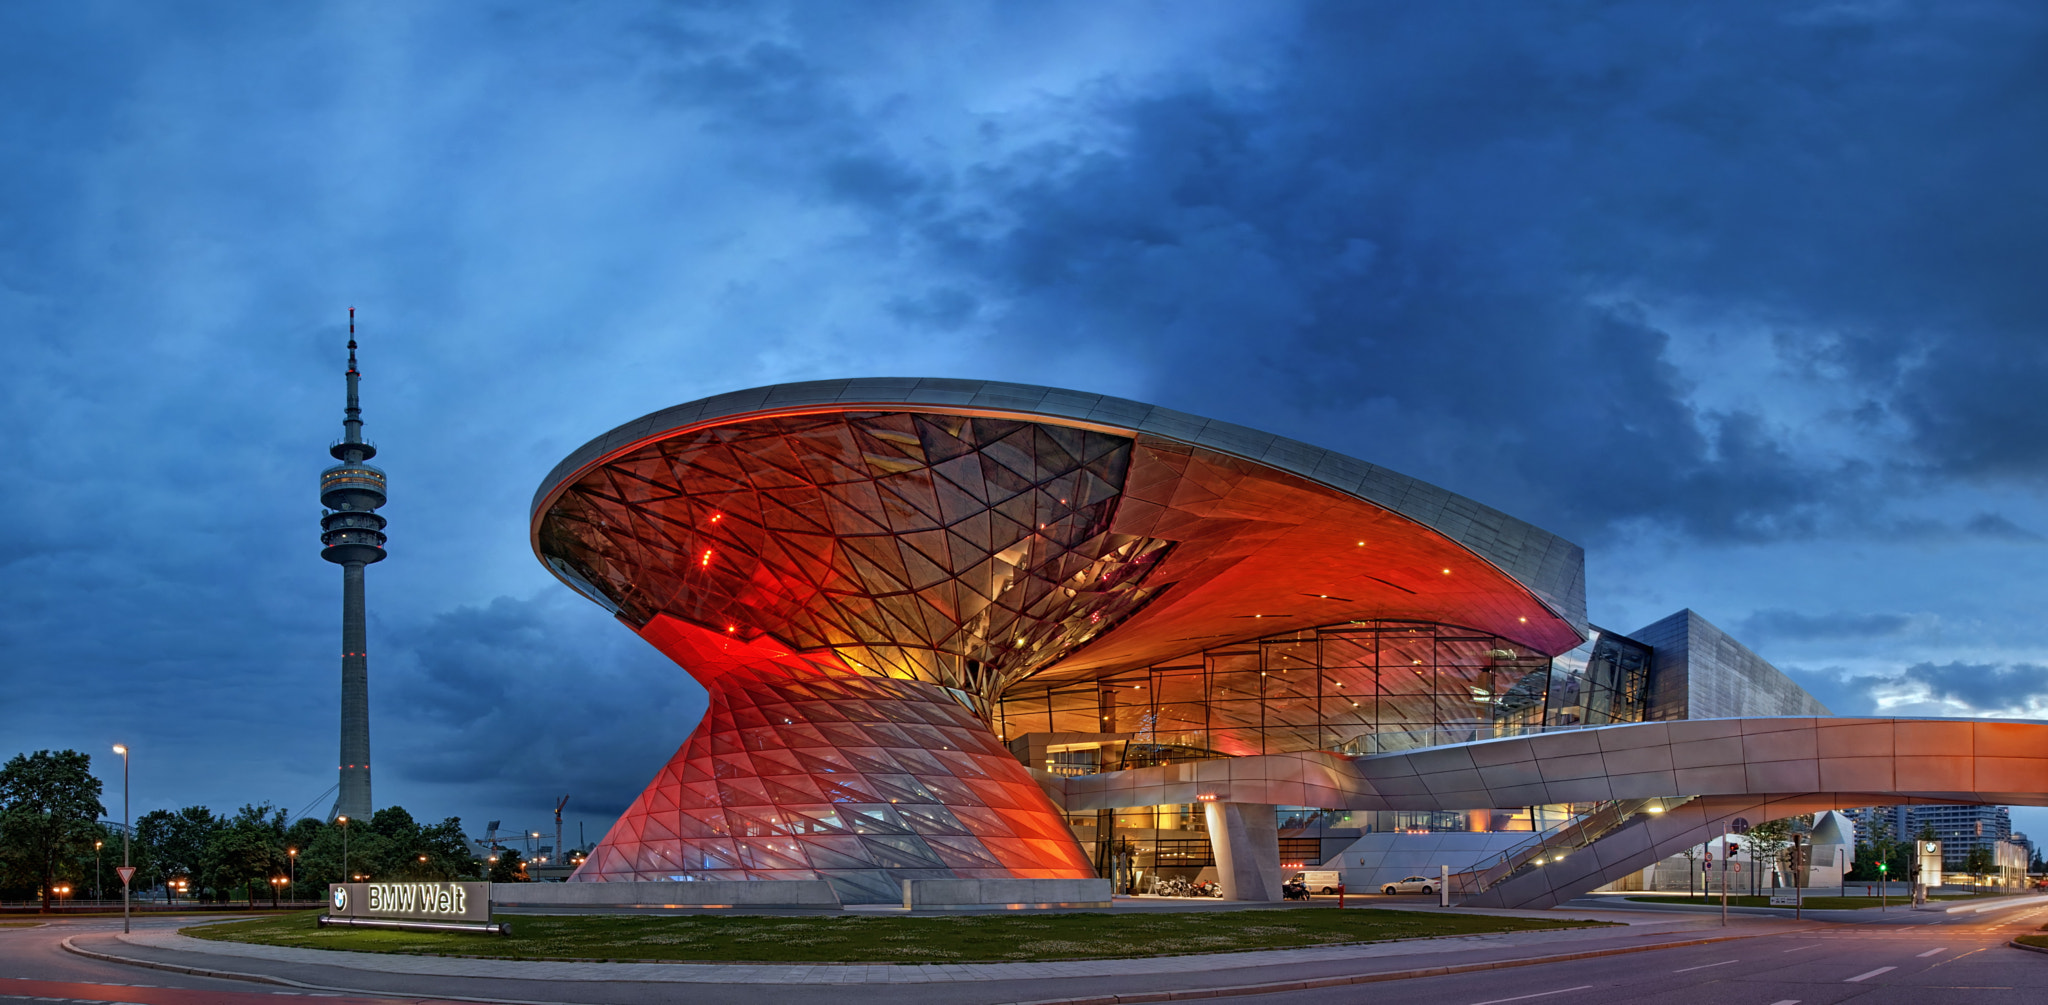 Photograph BMW Welt by Birgit Pittelkow on 500px